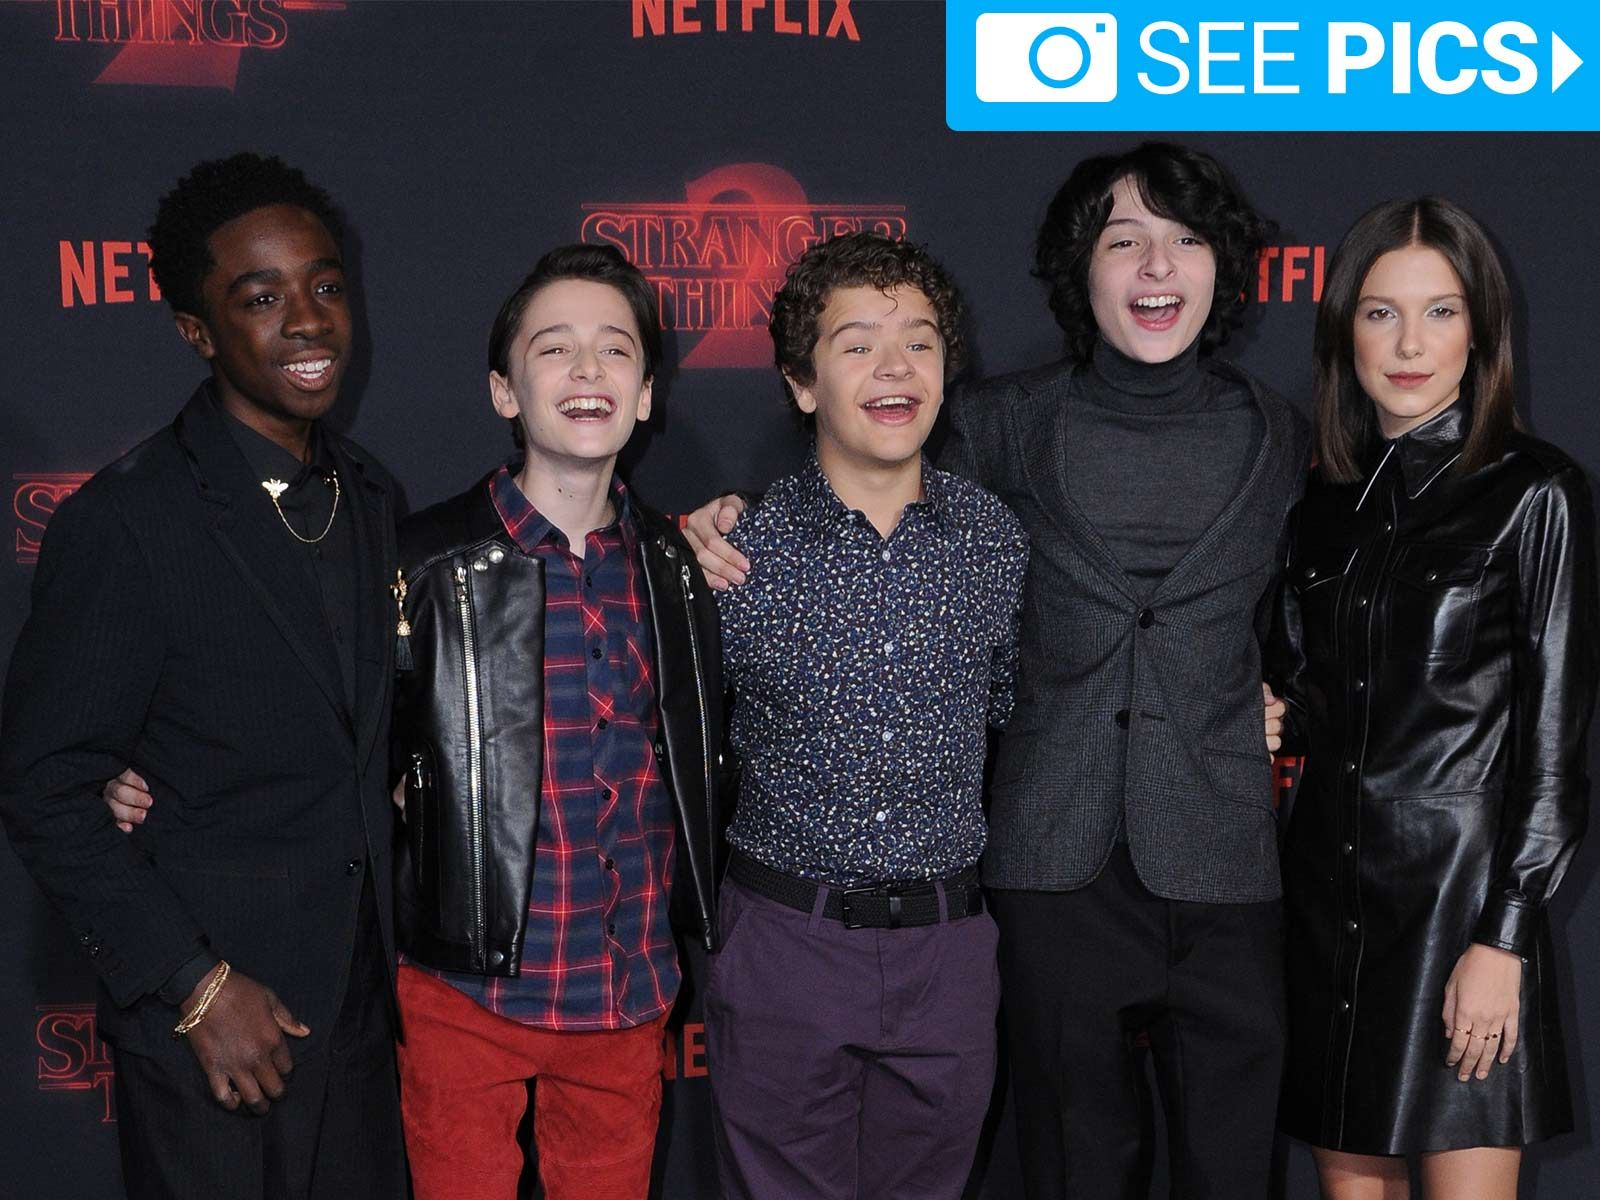 Stranger Things Cast Celebrates Season 2 Instead Of Binge